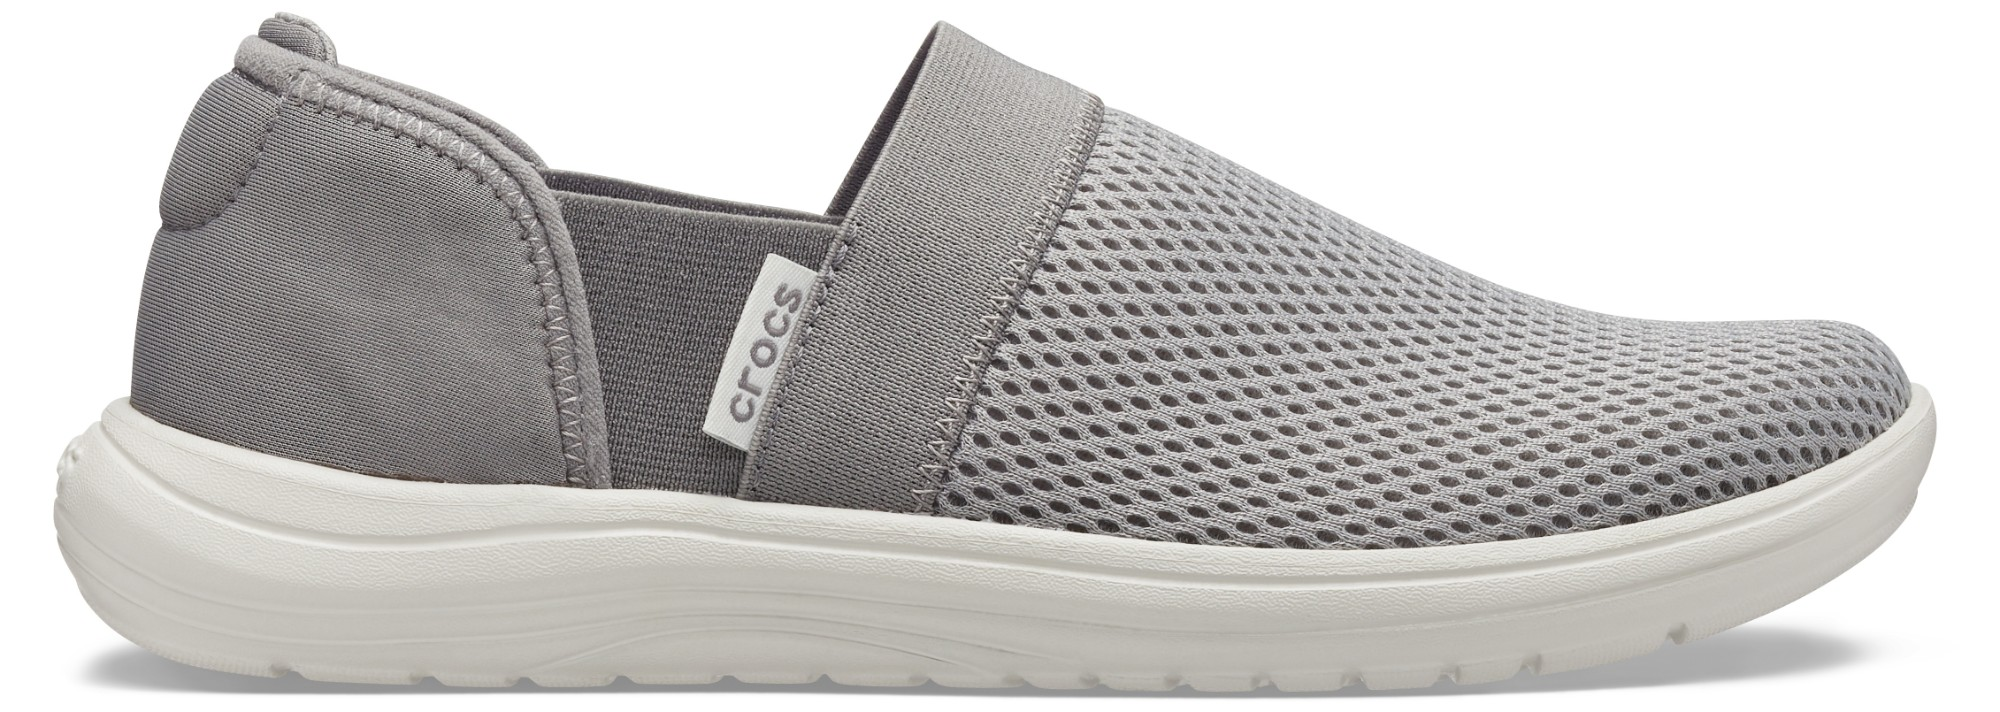 Crocs™ Reviva Mesh Slip-On Women's Smoke/Pearl White 41